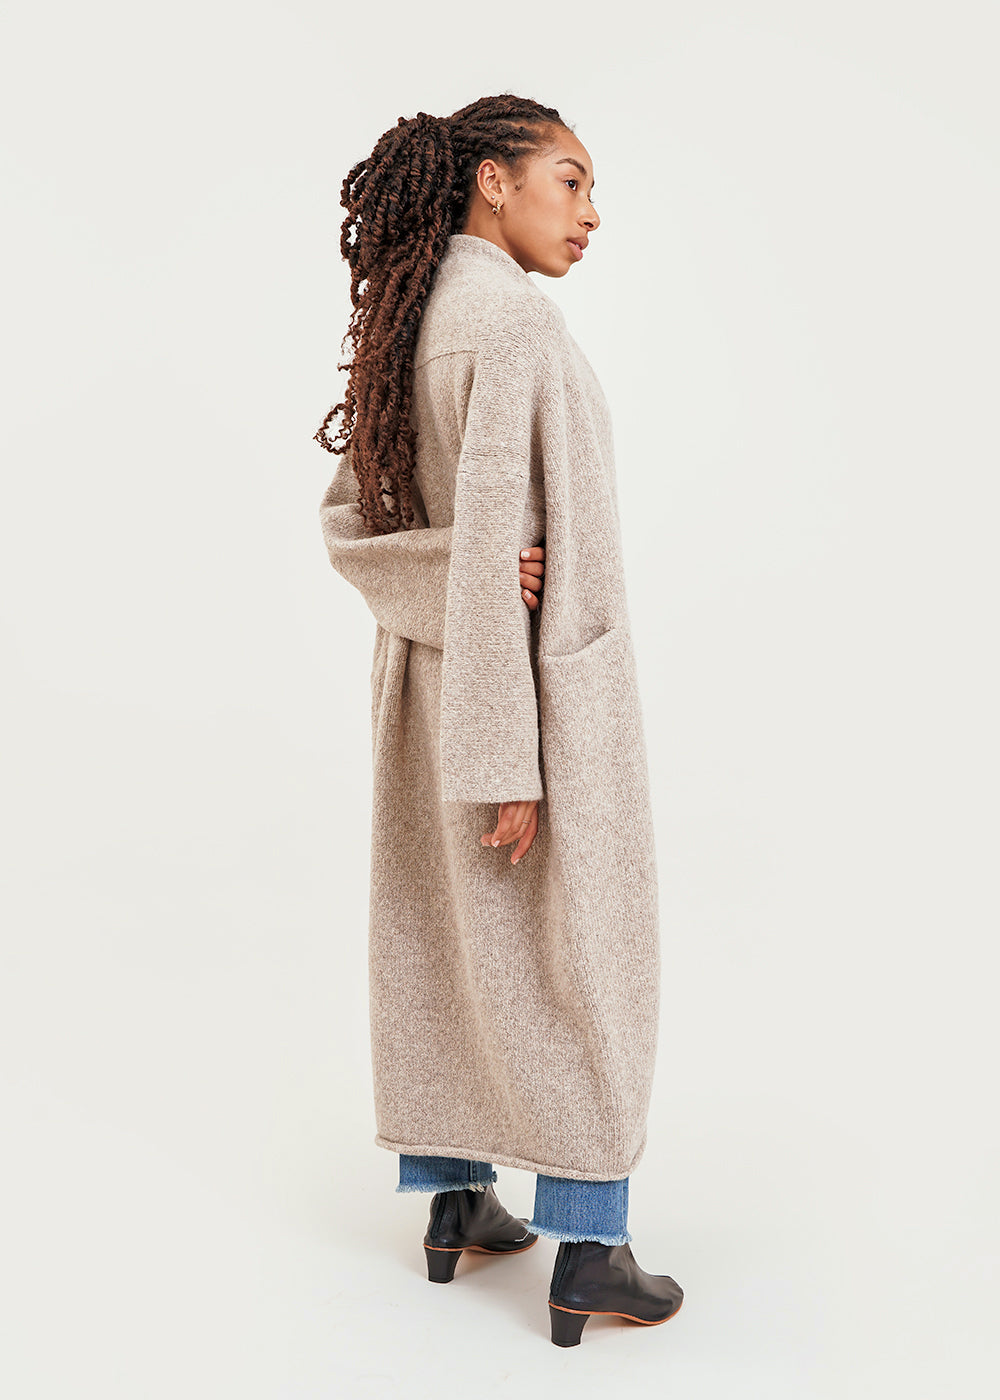 Oatmeal Long Shawl Cardigan